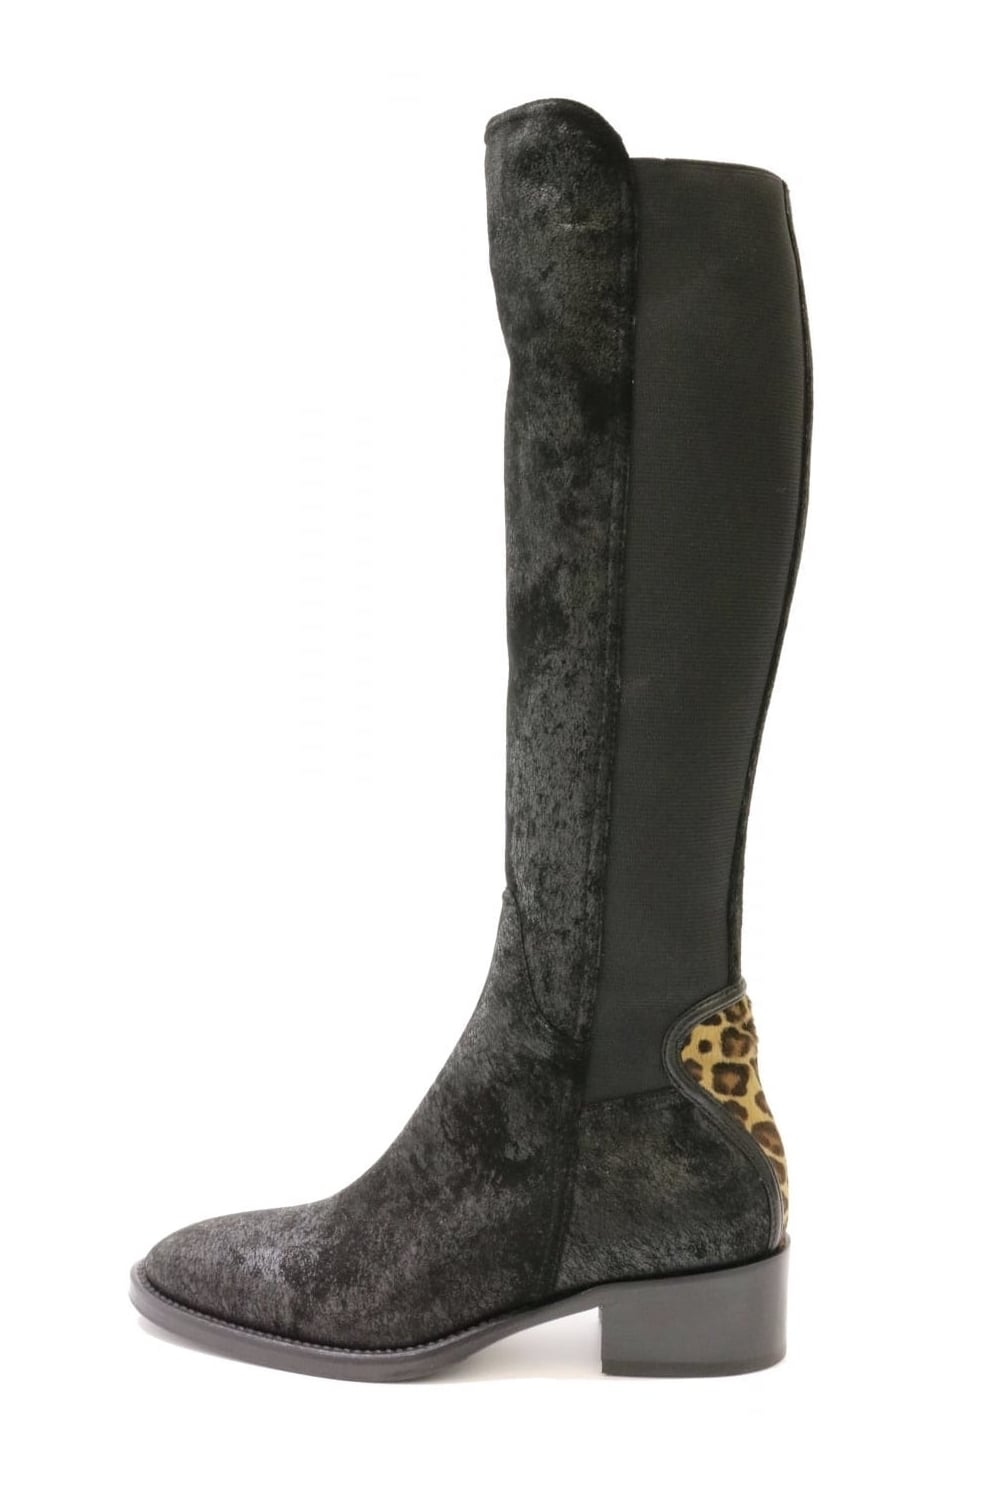 8a3a90ab4a92 LE PEPE Le Pepe Women's B81422 Long Leather Leopard Black Boot ...